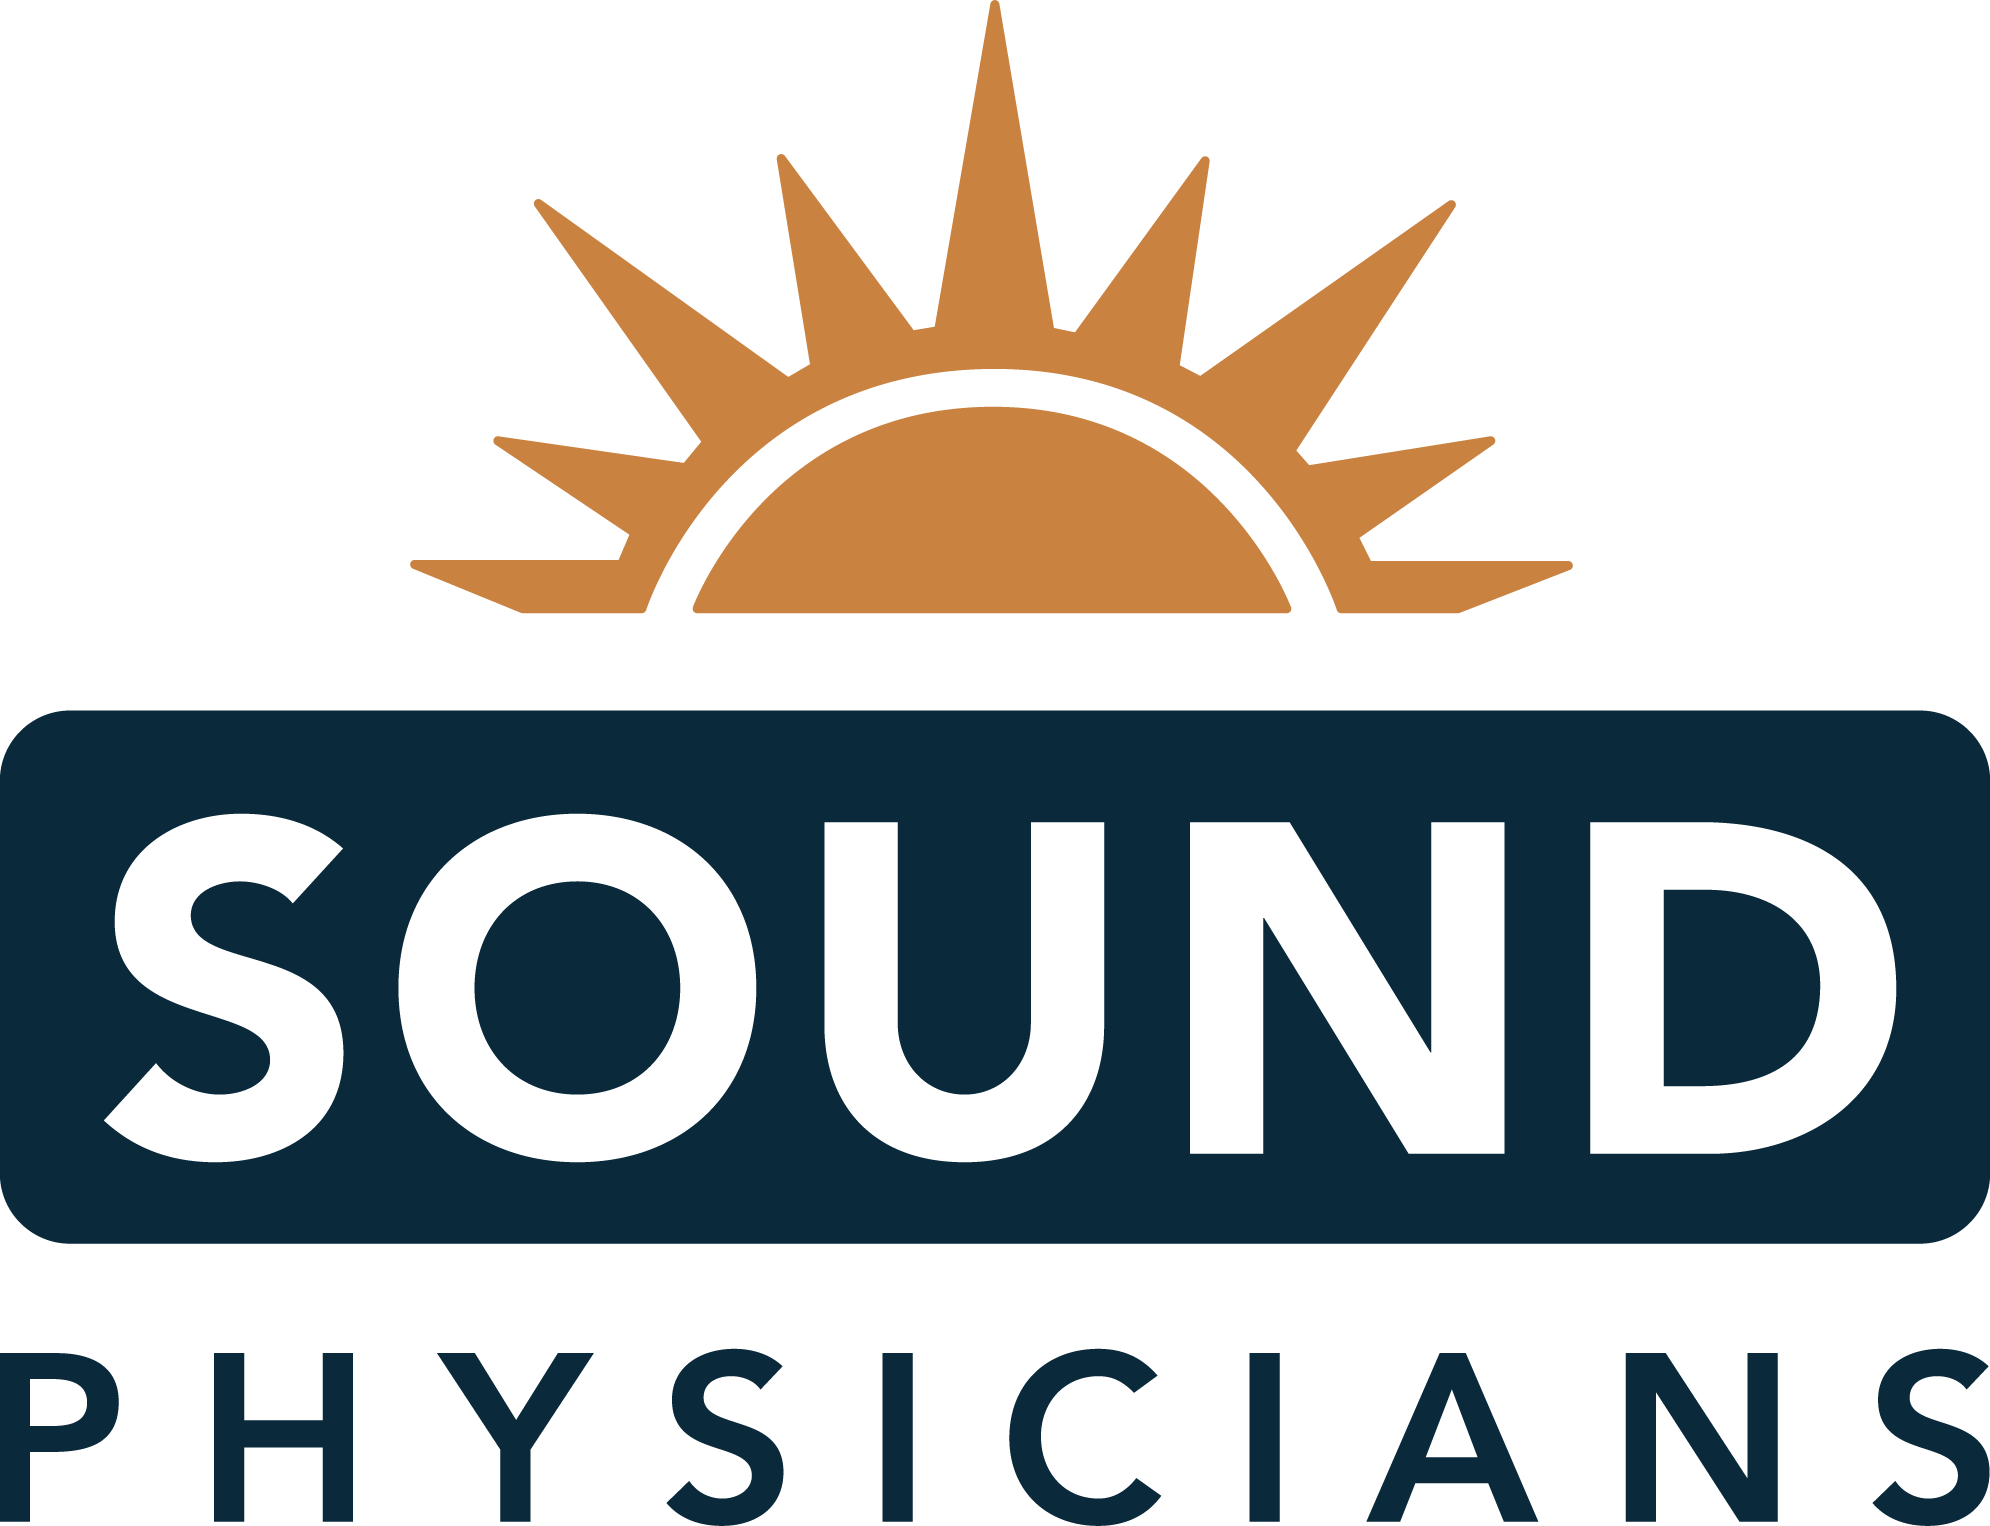 Sound Physicians Clinical Recruiter Image